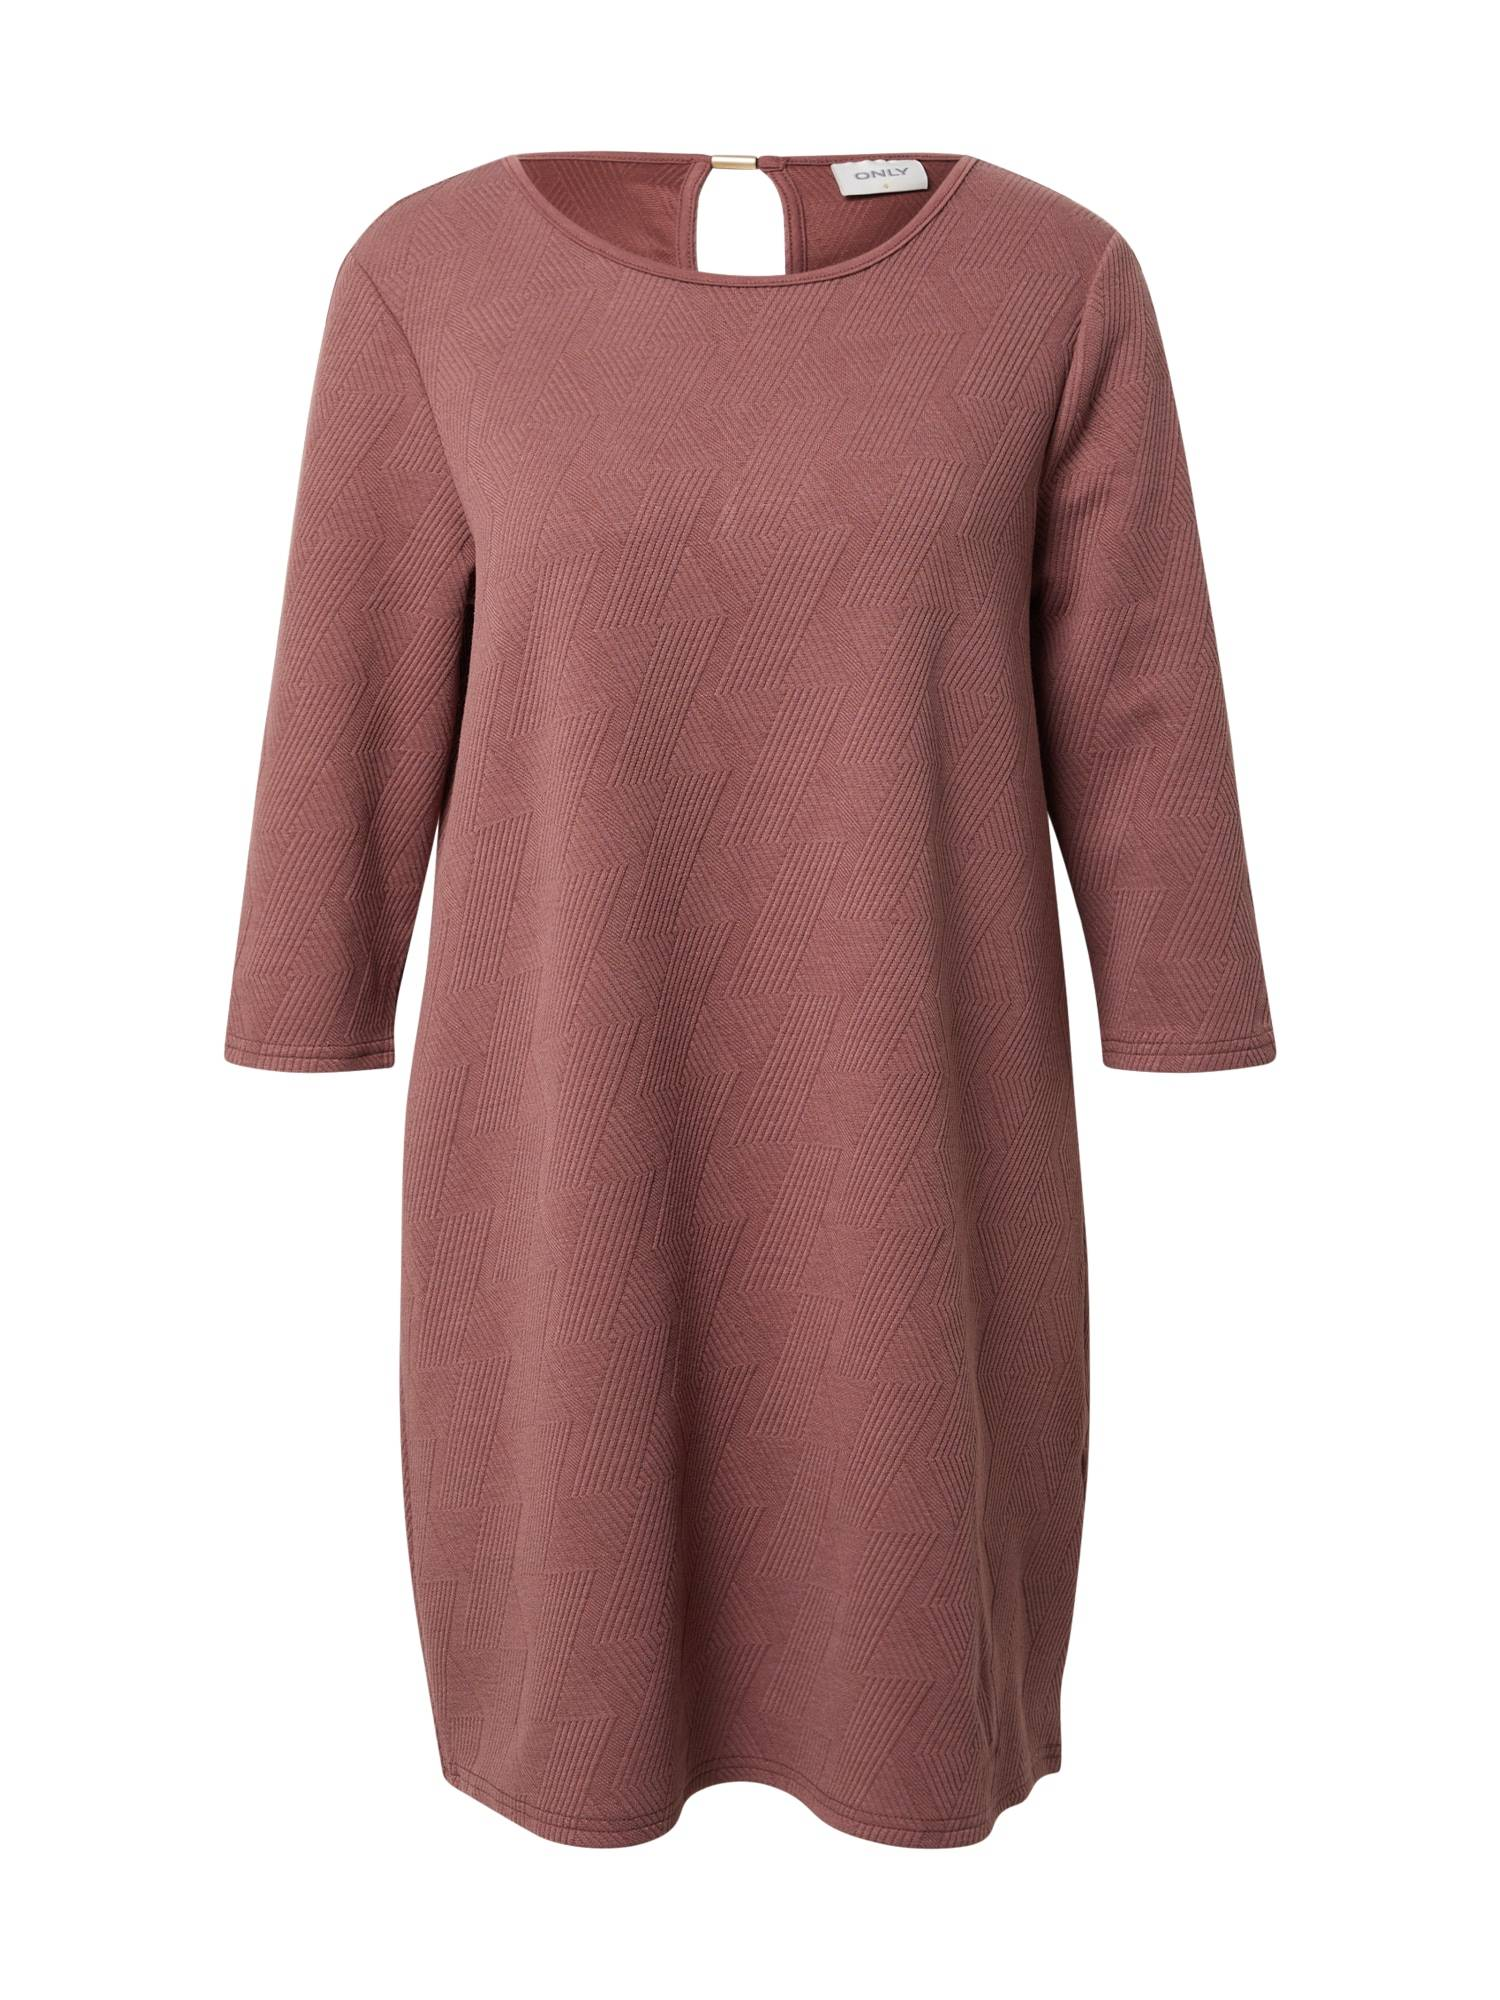 ONLY Robe 'SOJA'  - Rose - Taille: XS - female